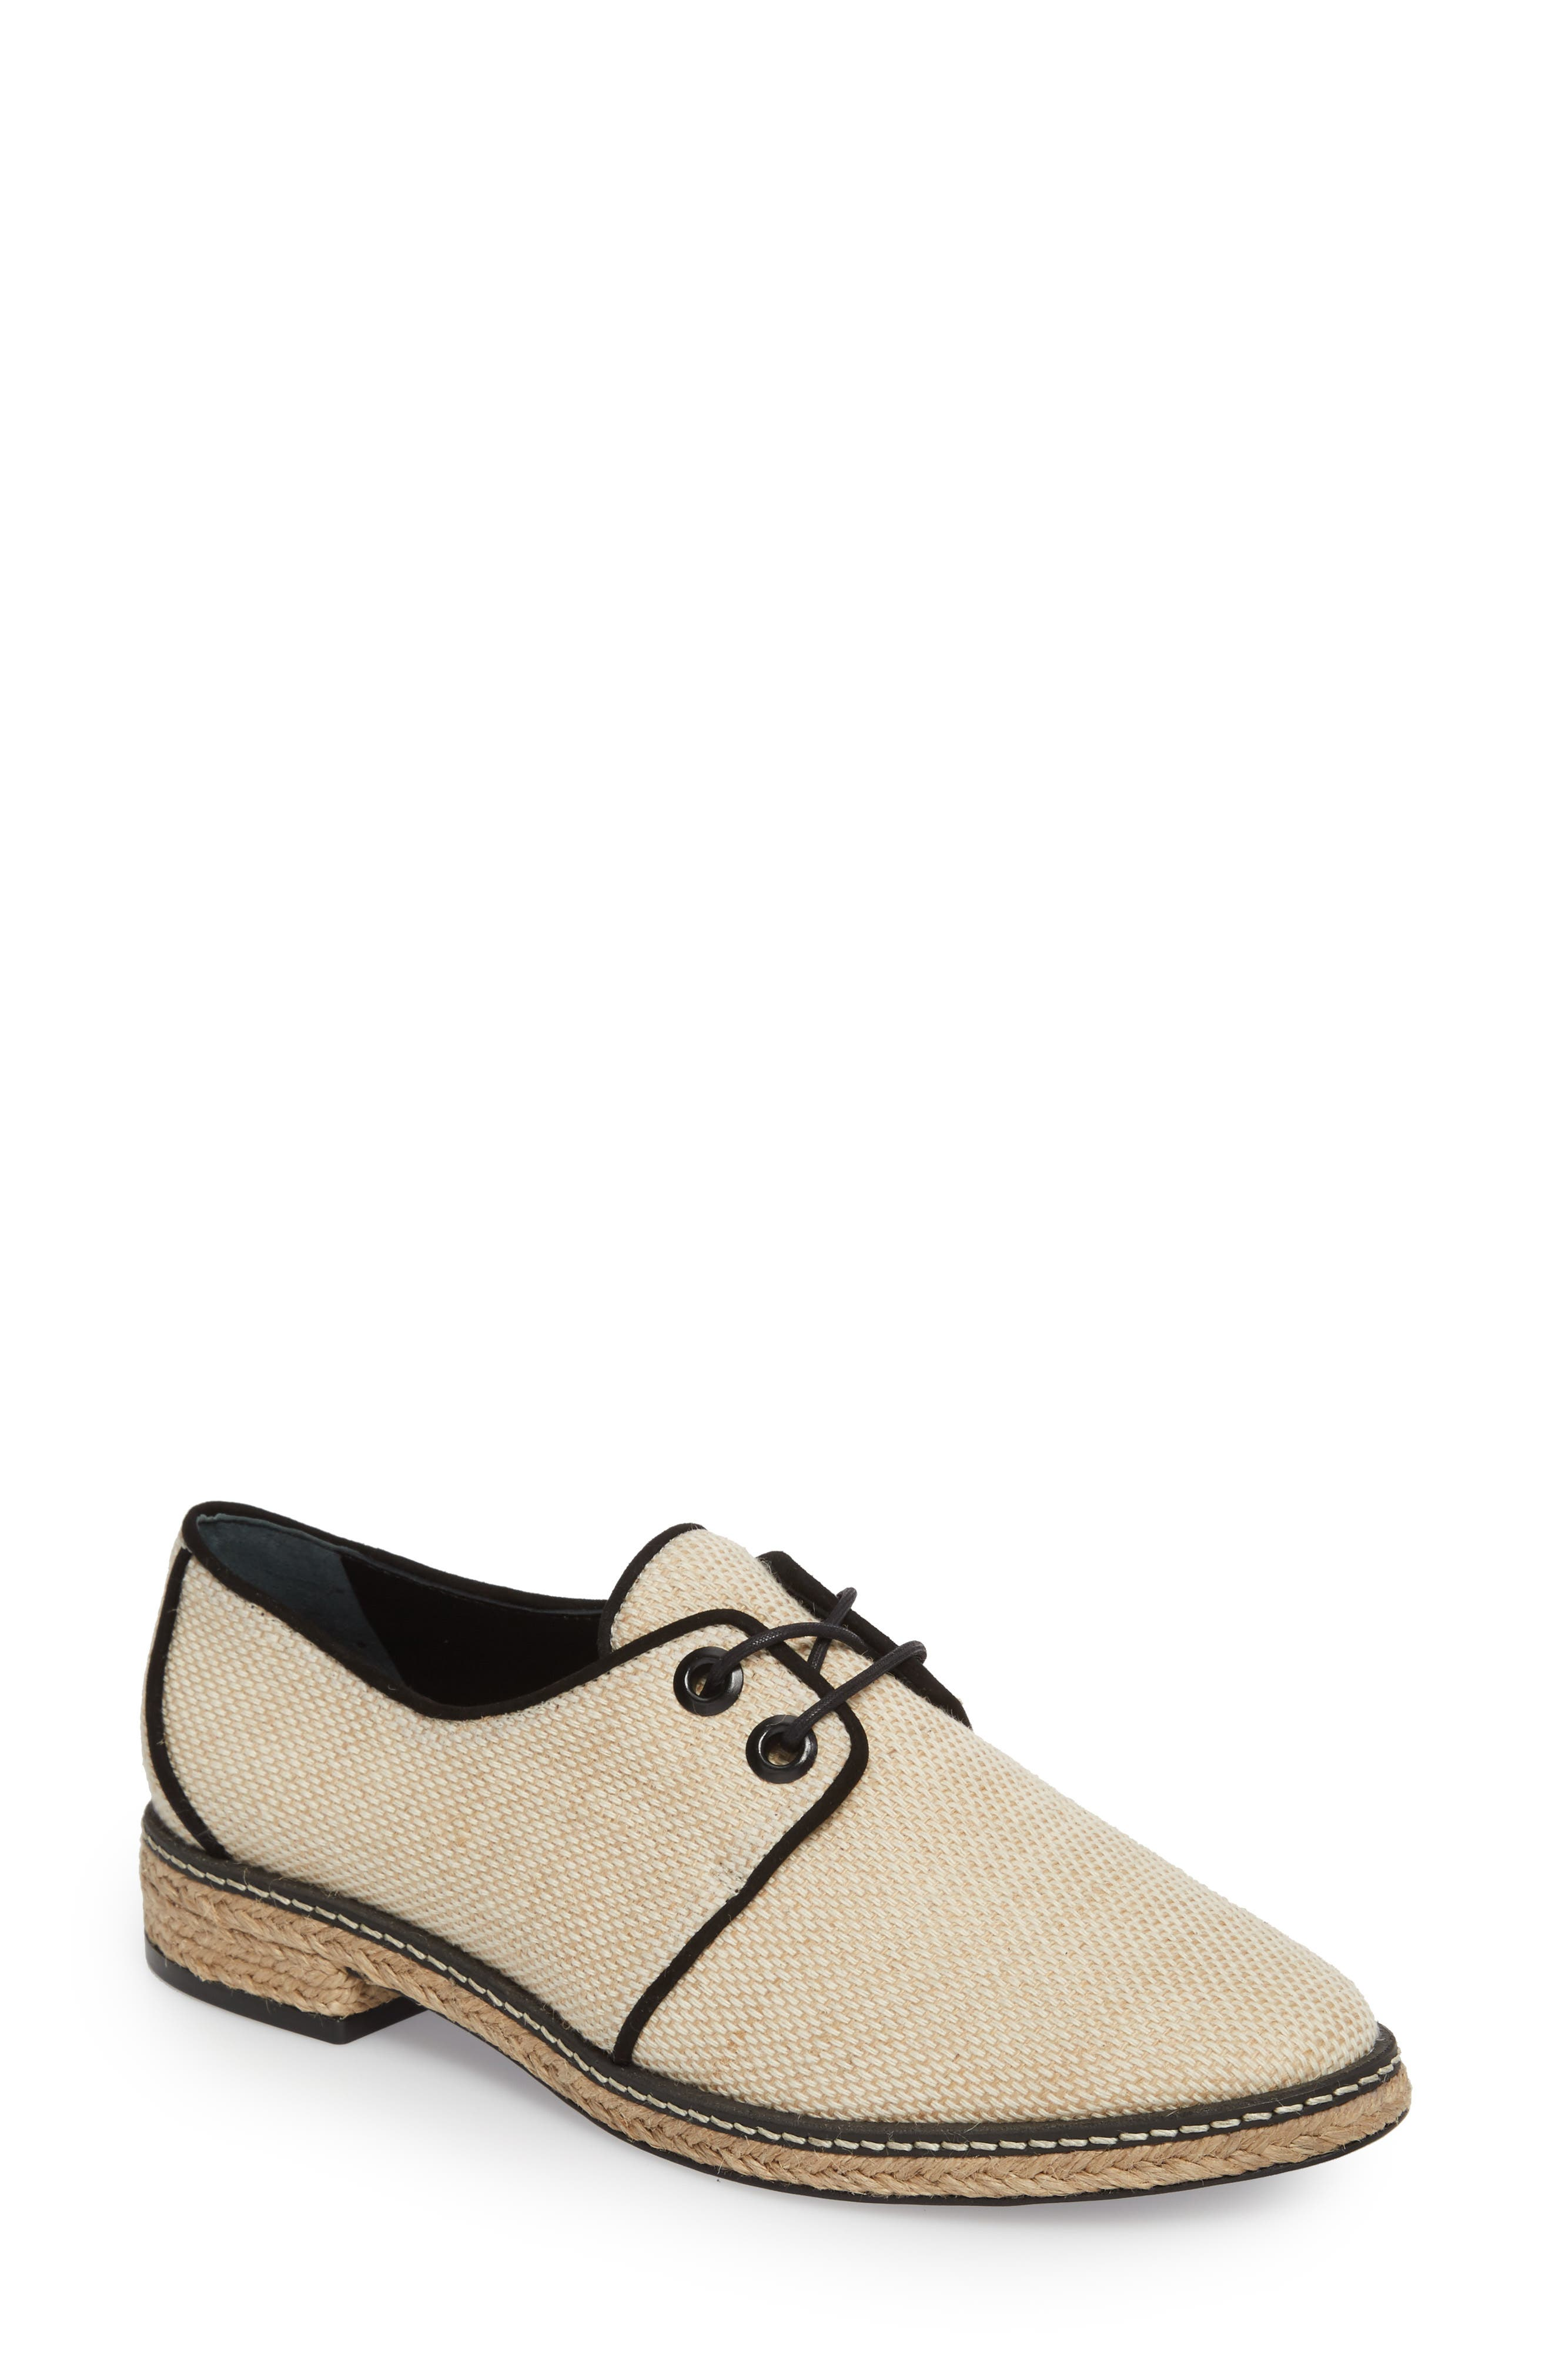 Main Image - Tory Burch Fawn Espadrille Oxford (Women)